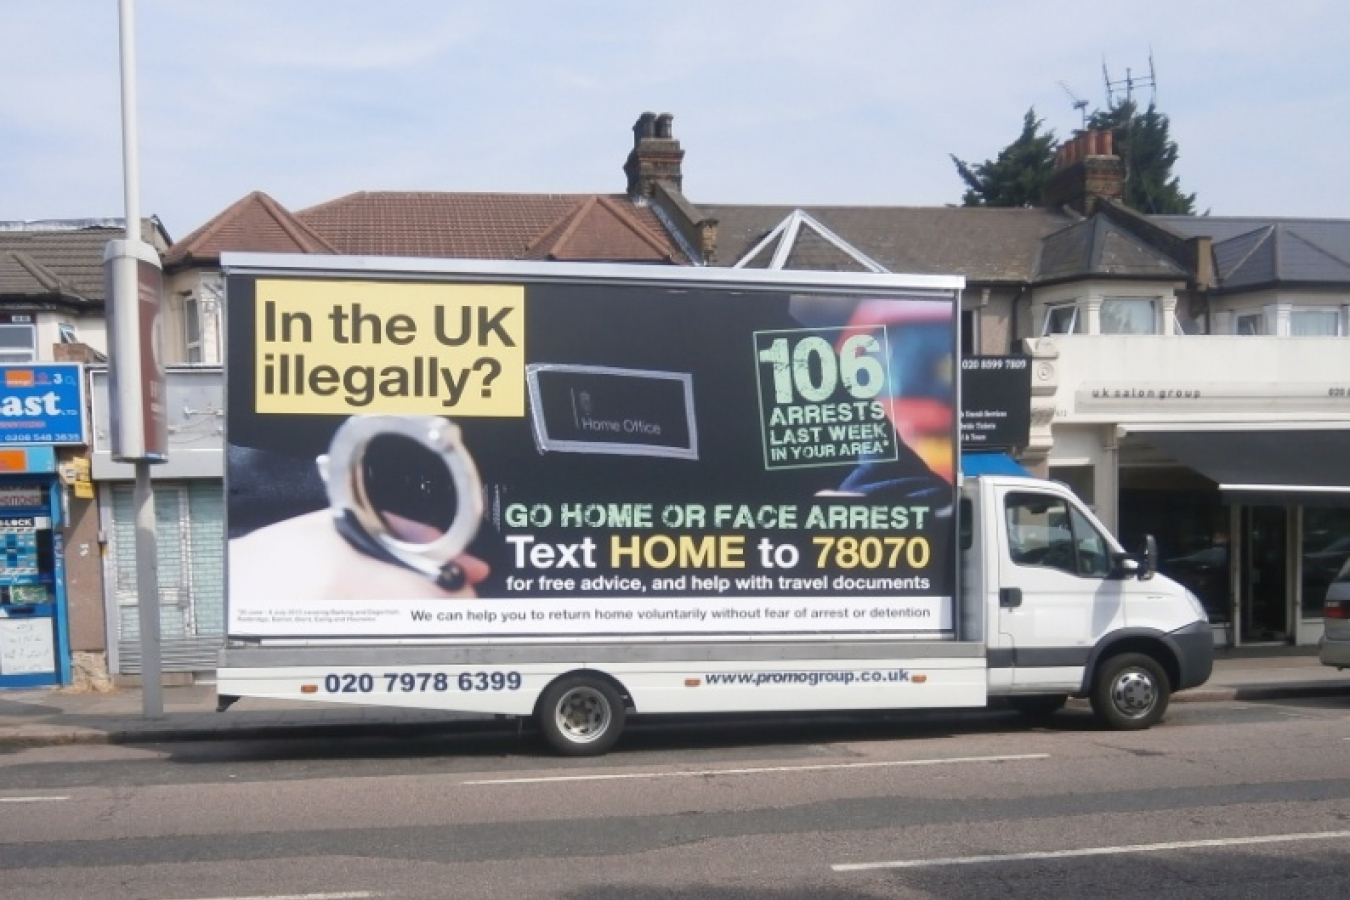 Infamous Home Office Go home or face arrest van 2013